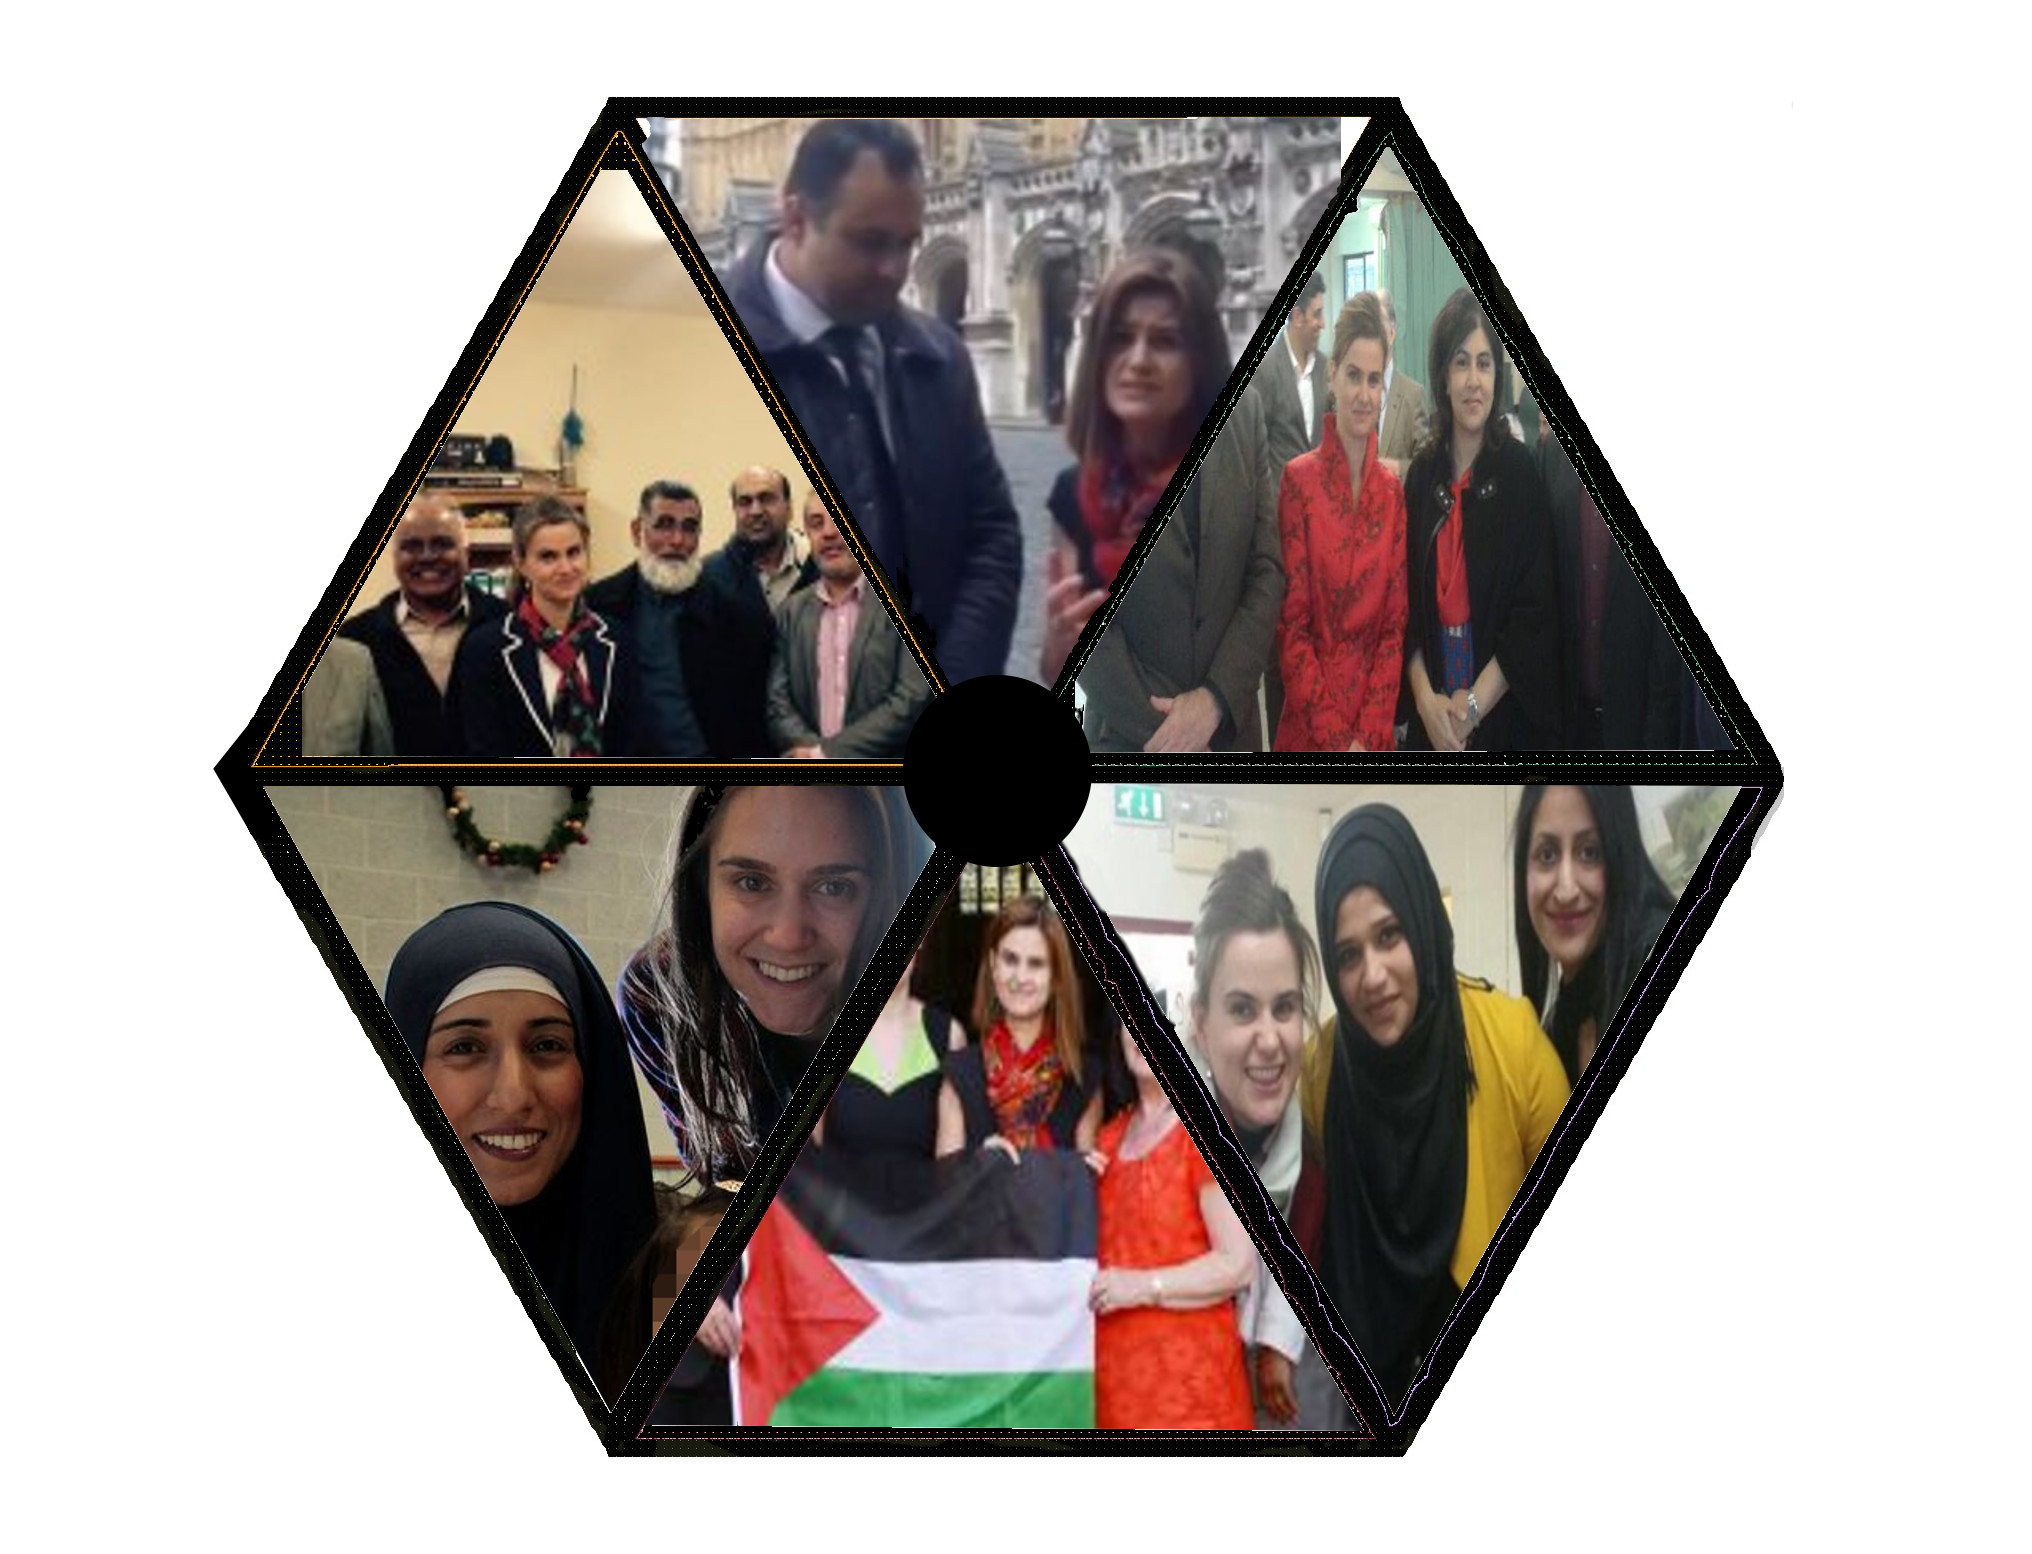 The 'Jo Cox wheel of Islamic appeasement' game graphic